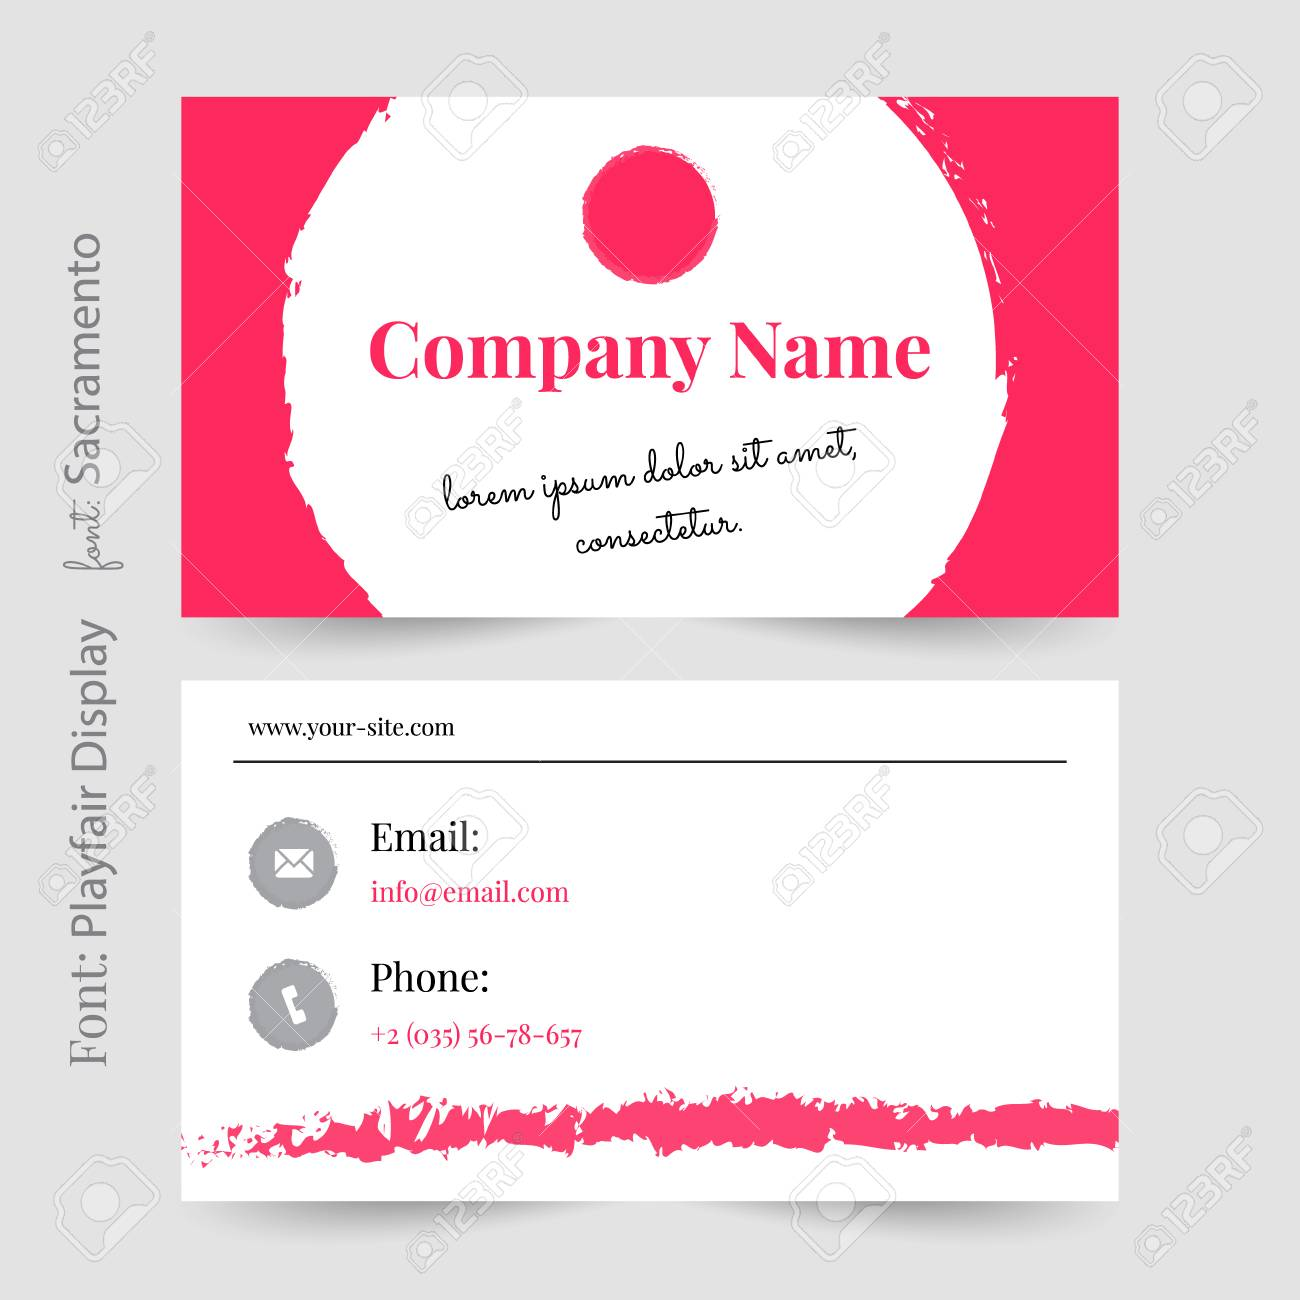 Business card or visiting card template vector pink visiting business card or visiting card template vector pink visiting card stock vector 92171518 colourmoves